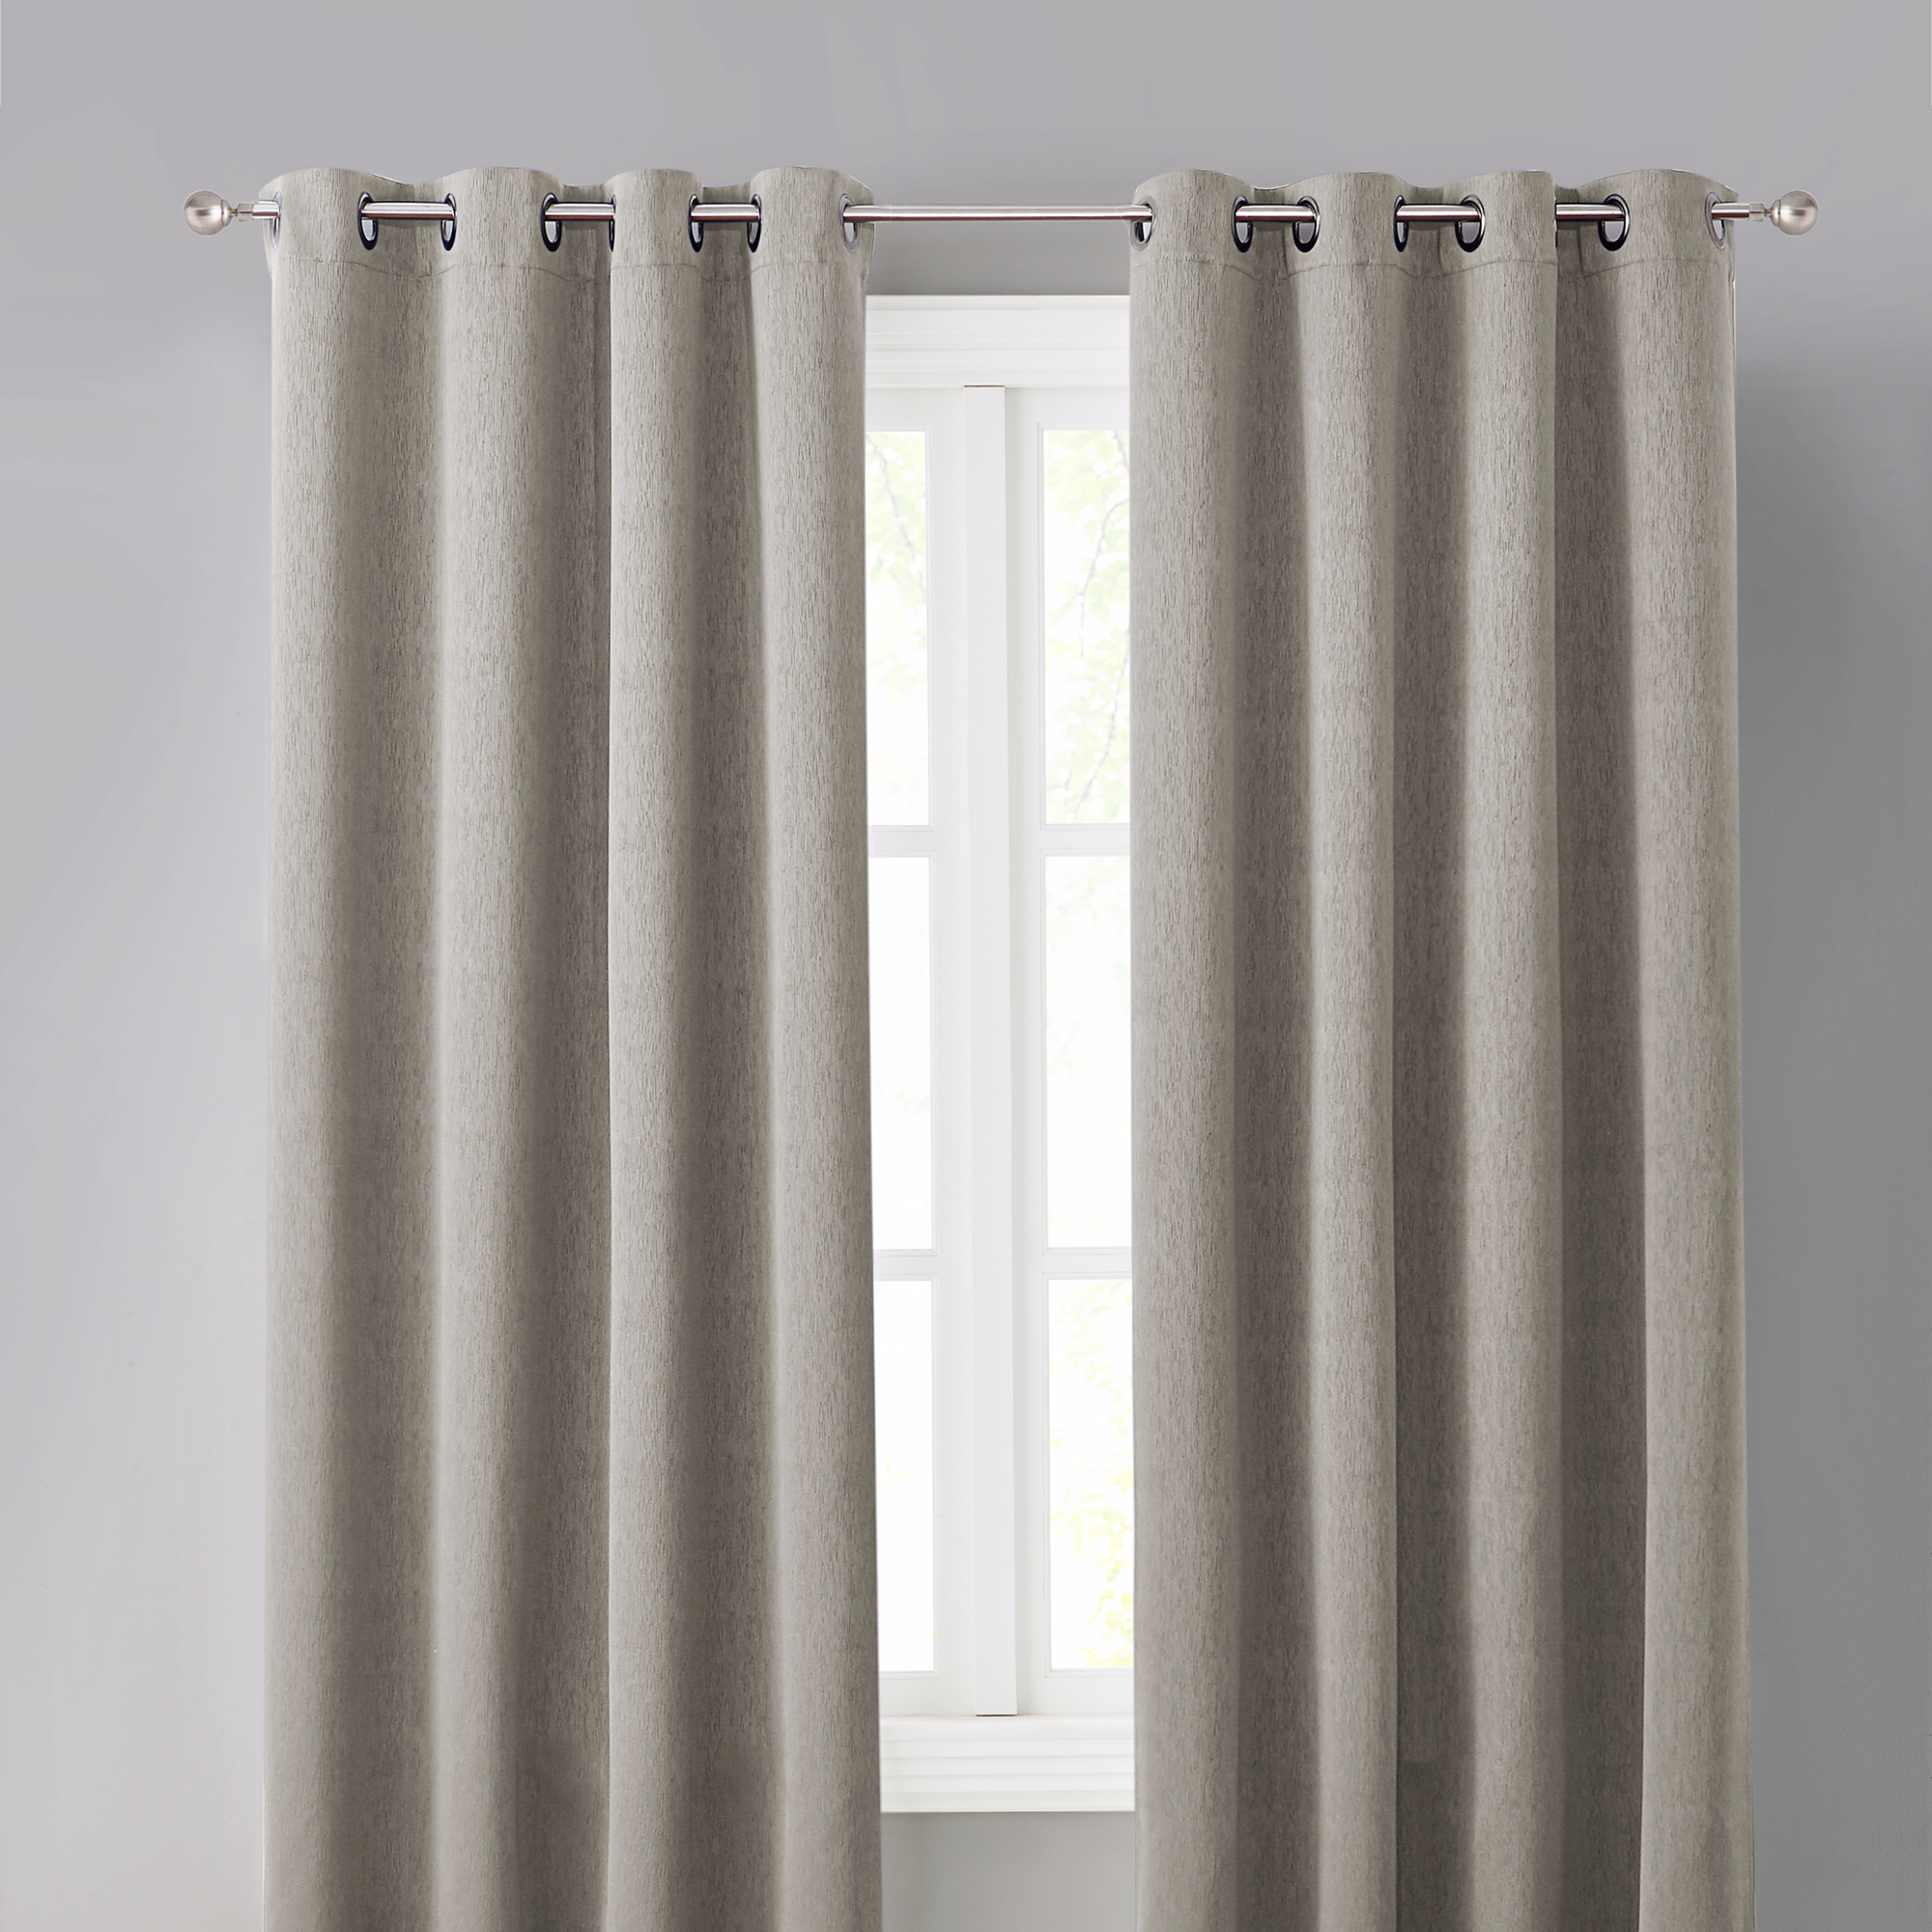 marvelous white curtain dimensions double for curtains ideas single x window glass bedroom windows